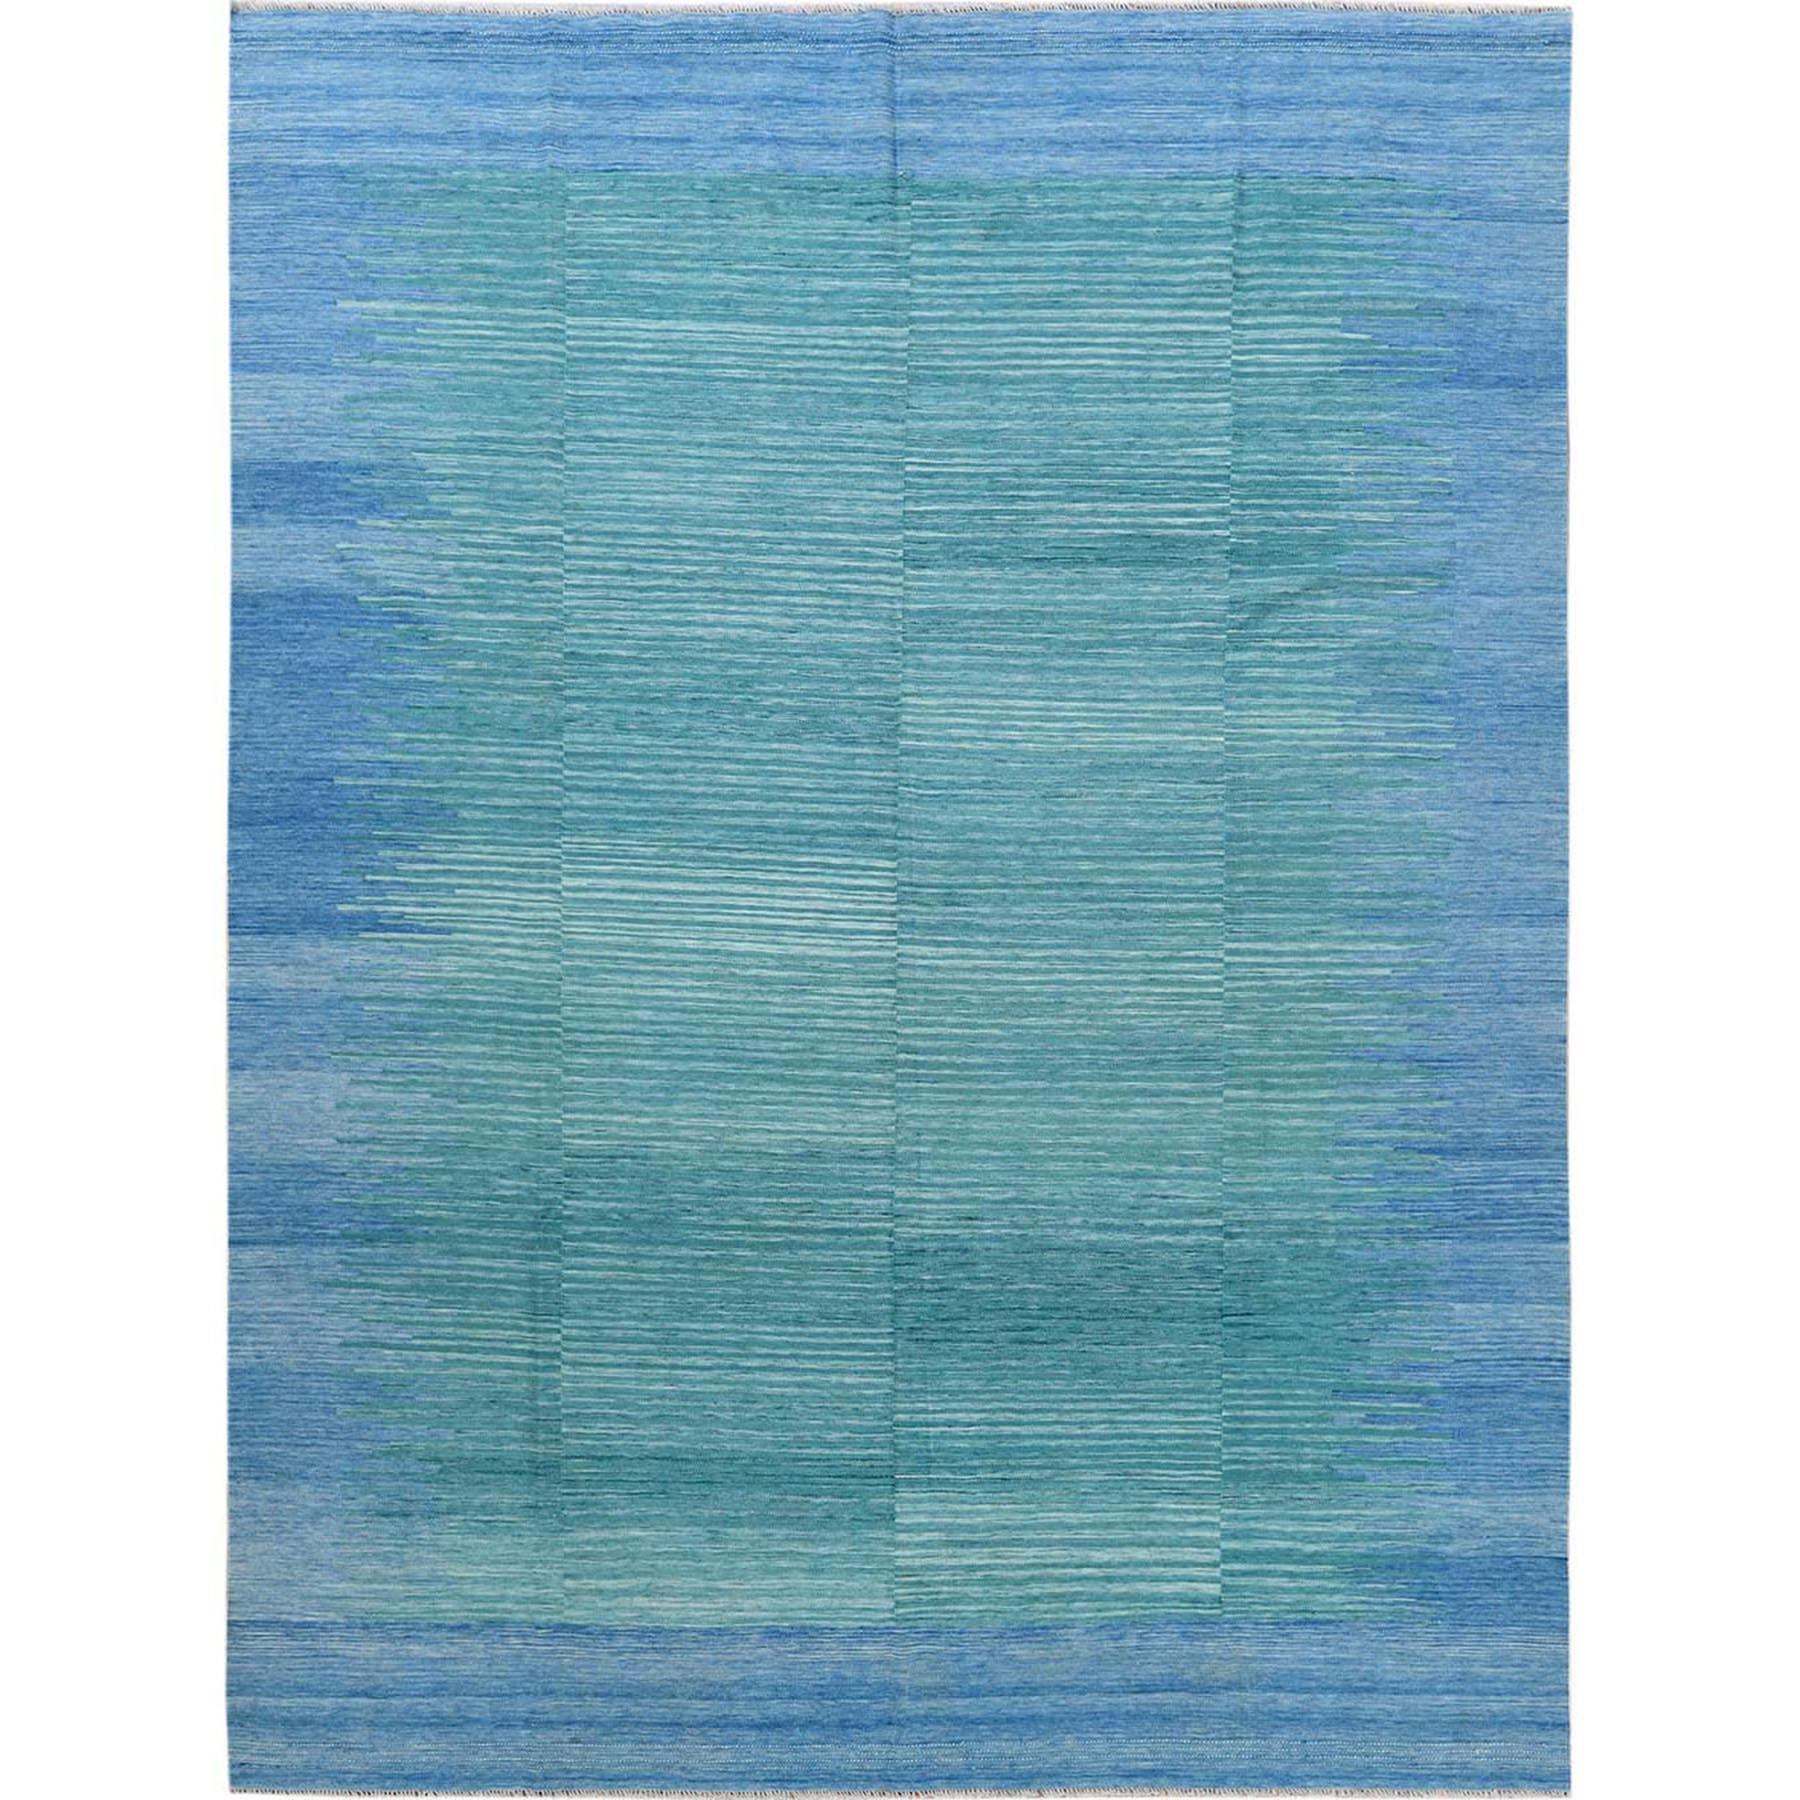 "9'1""x12' THE AQUAMARINE Hand Woven Flat Weave Kilim Natural Wool Reversible Oriental Rug"